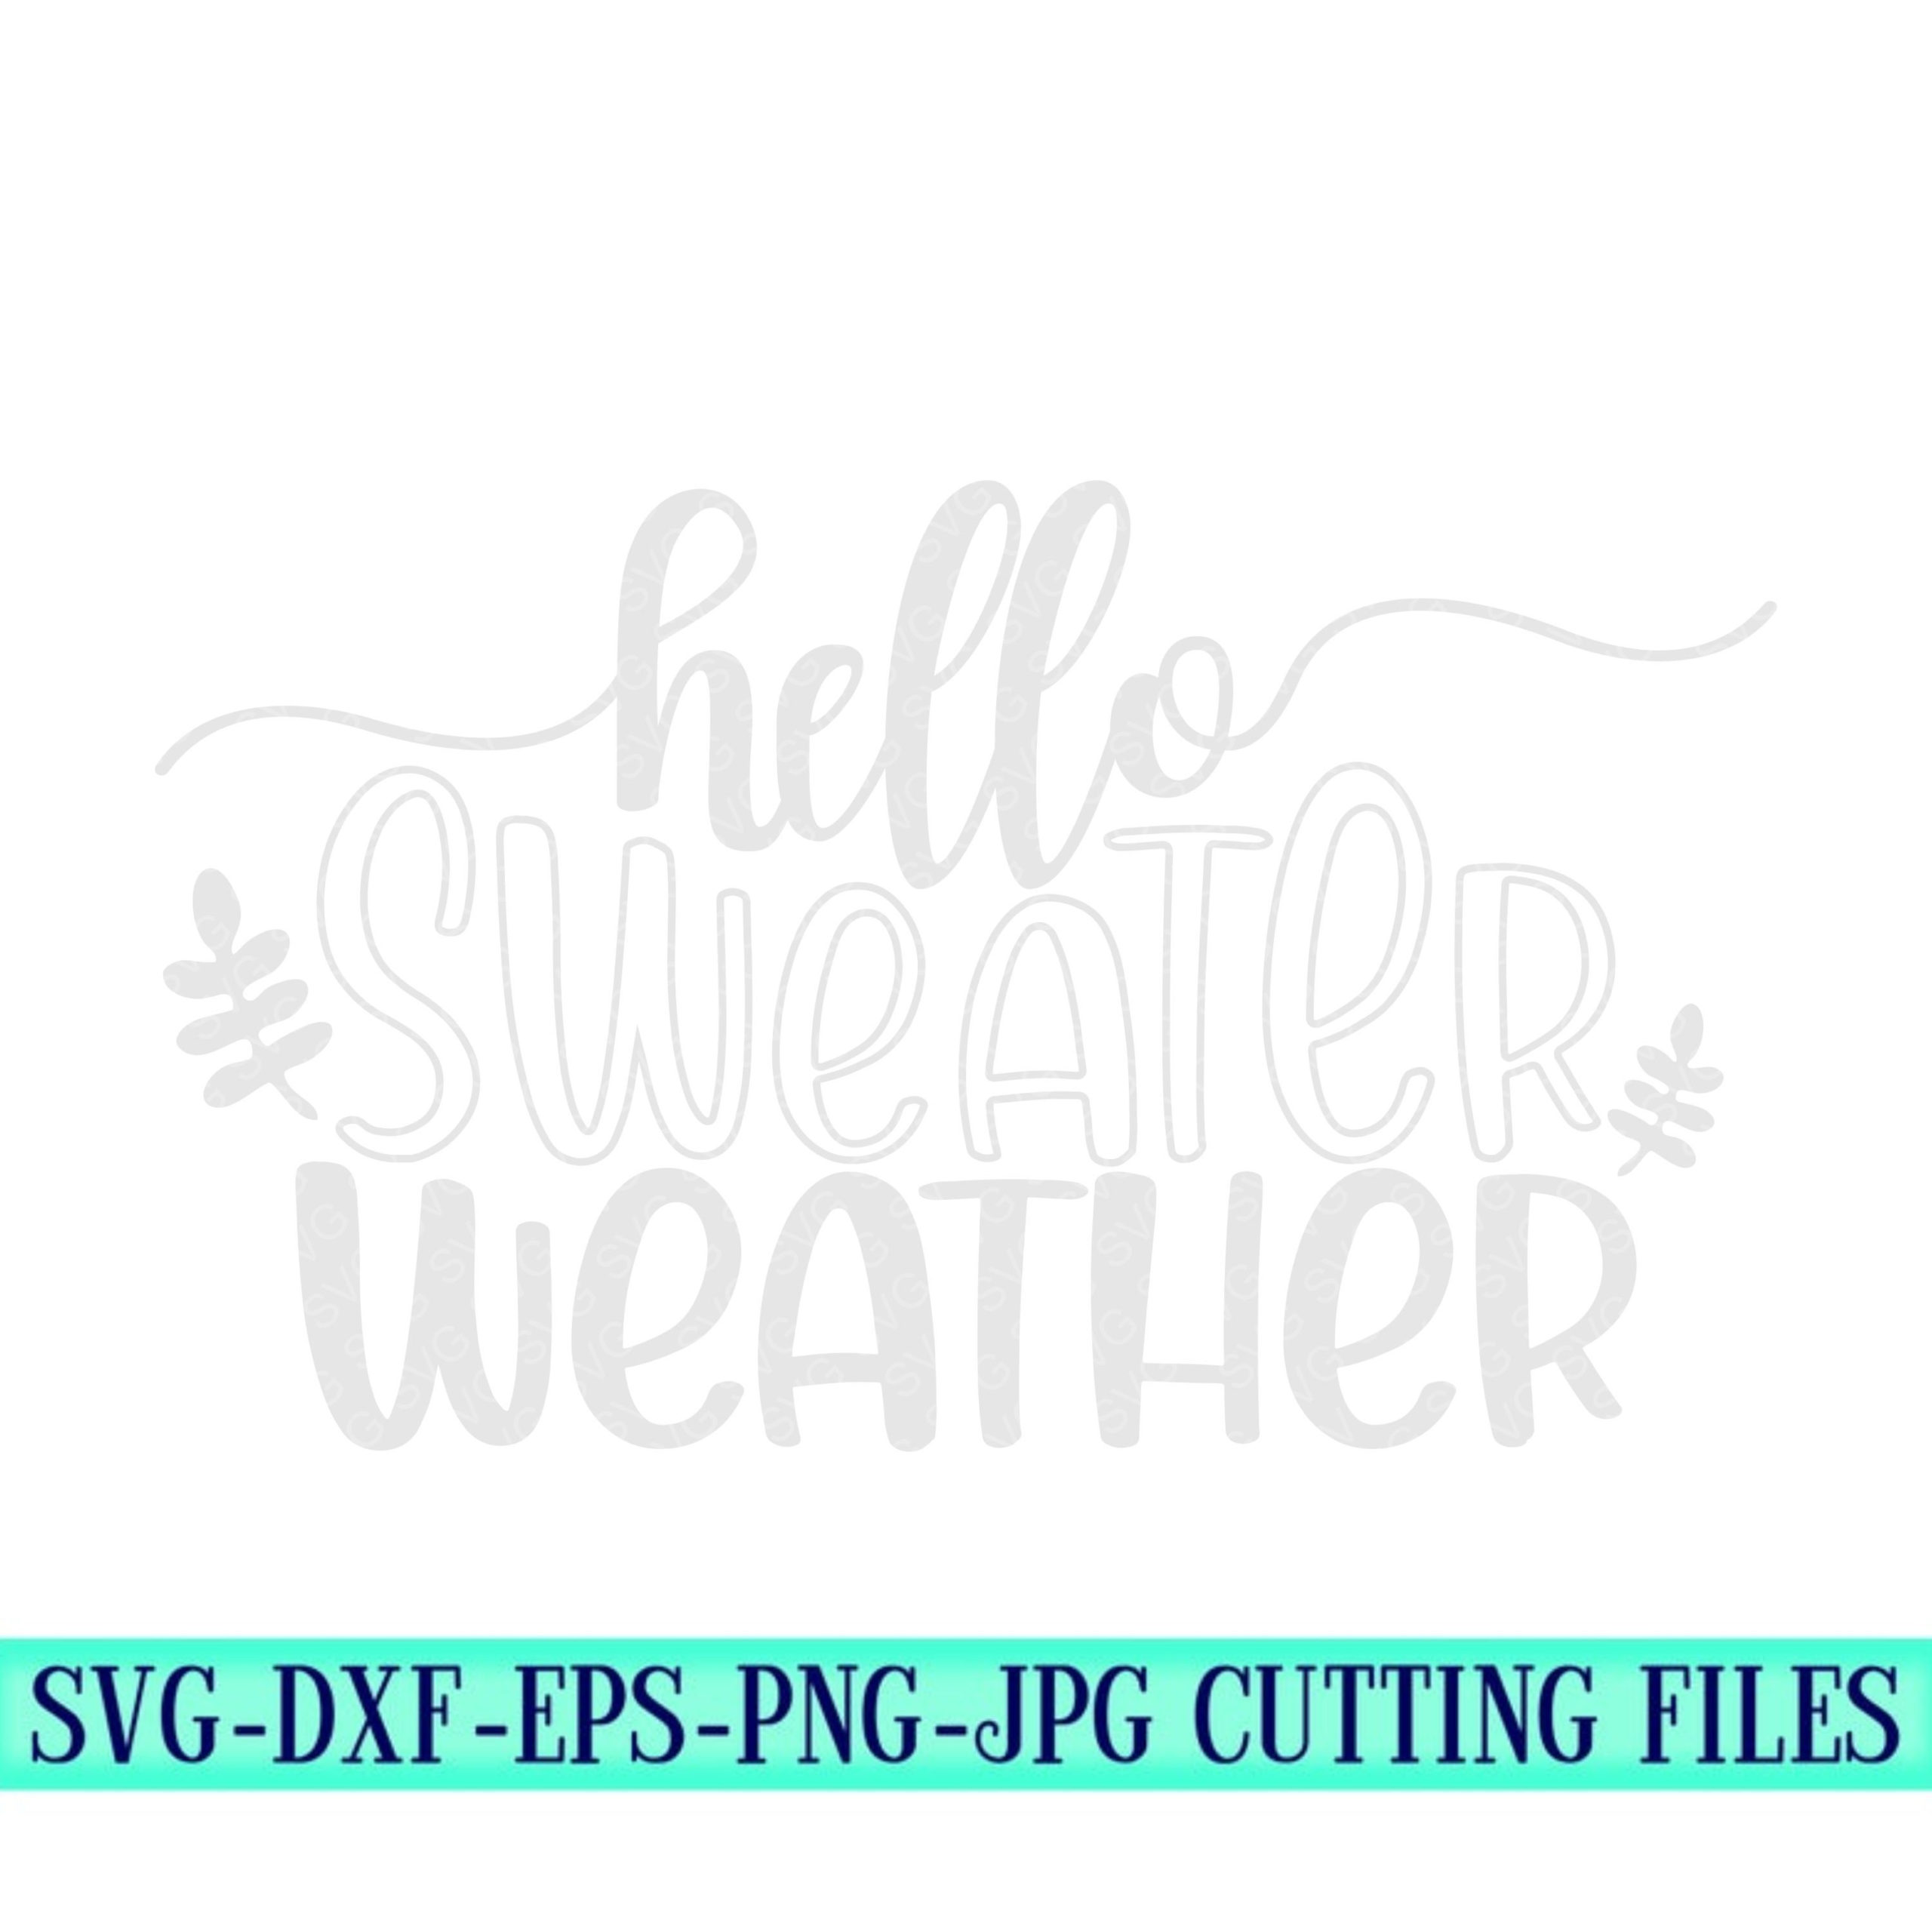 Hello-sweater-weather-svg-sweater-weather-svg-autumn-svg-winter-svgfall-svg-designsfall-cut-filessvg-for-cricutsvg-for-mobile-5f6f6f4c